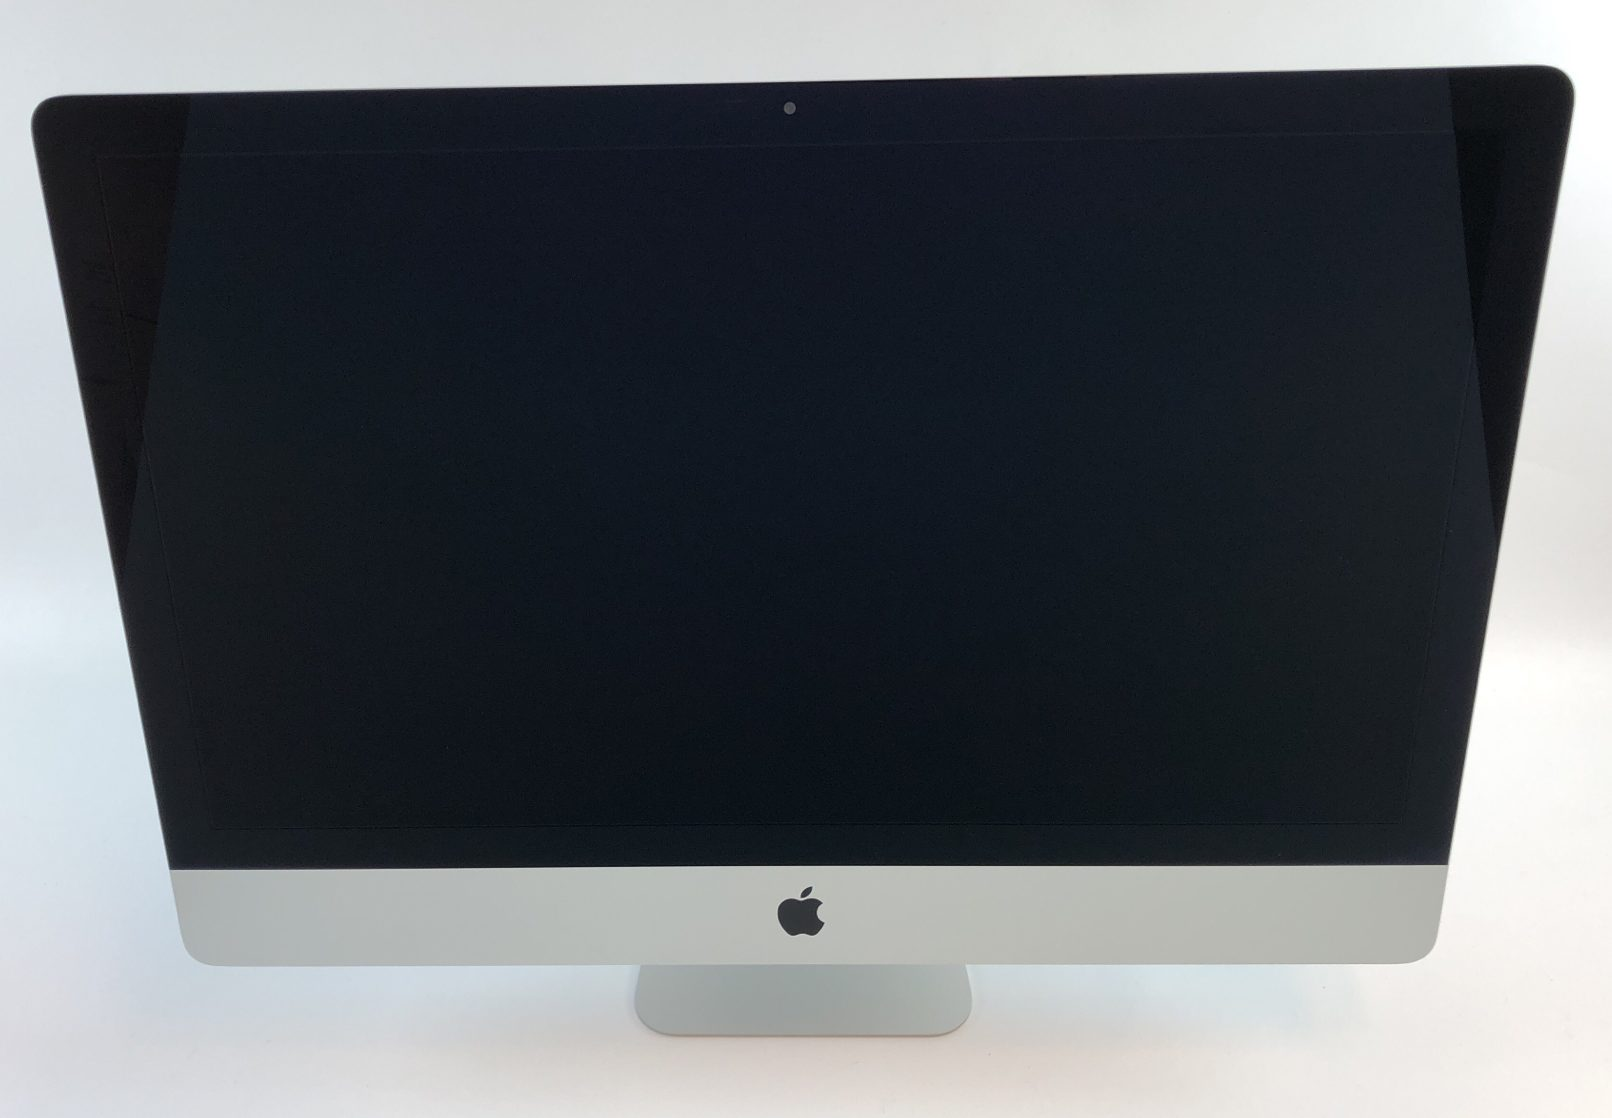 "iMac 27"" Retina 5K Late 2015 (Intel Quad-Core i5 3.3 GHz 16 GB RAM 512 GB SSD), Intel Quad-Core i5 3.3 GHz, 16 GB RAM, 512 GB SSD, Bild 1"